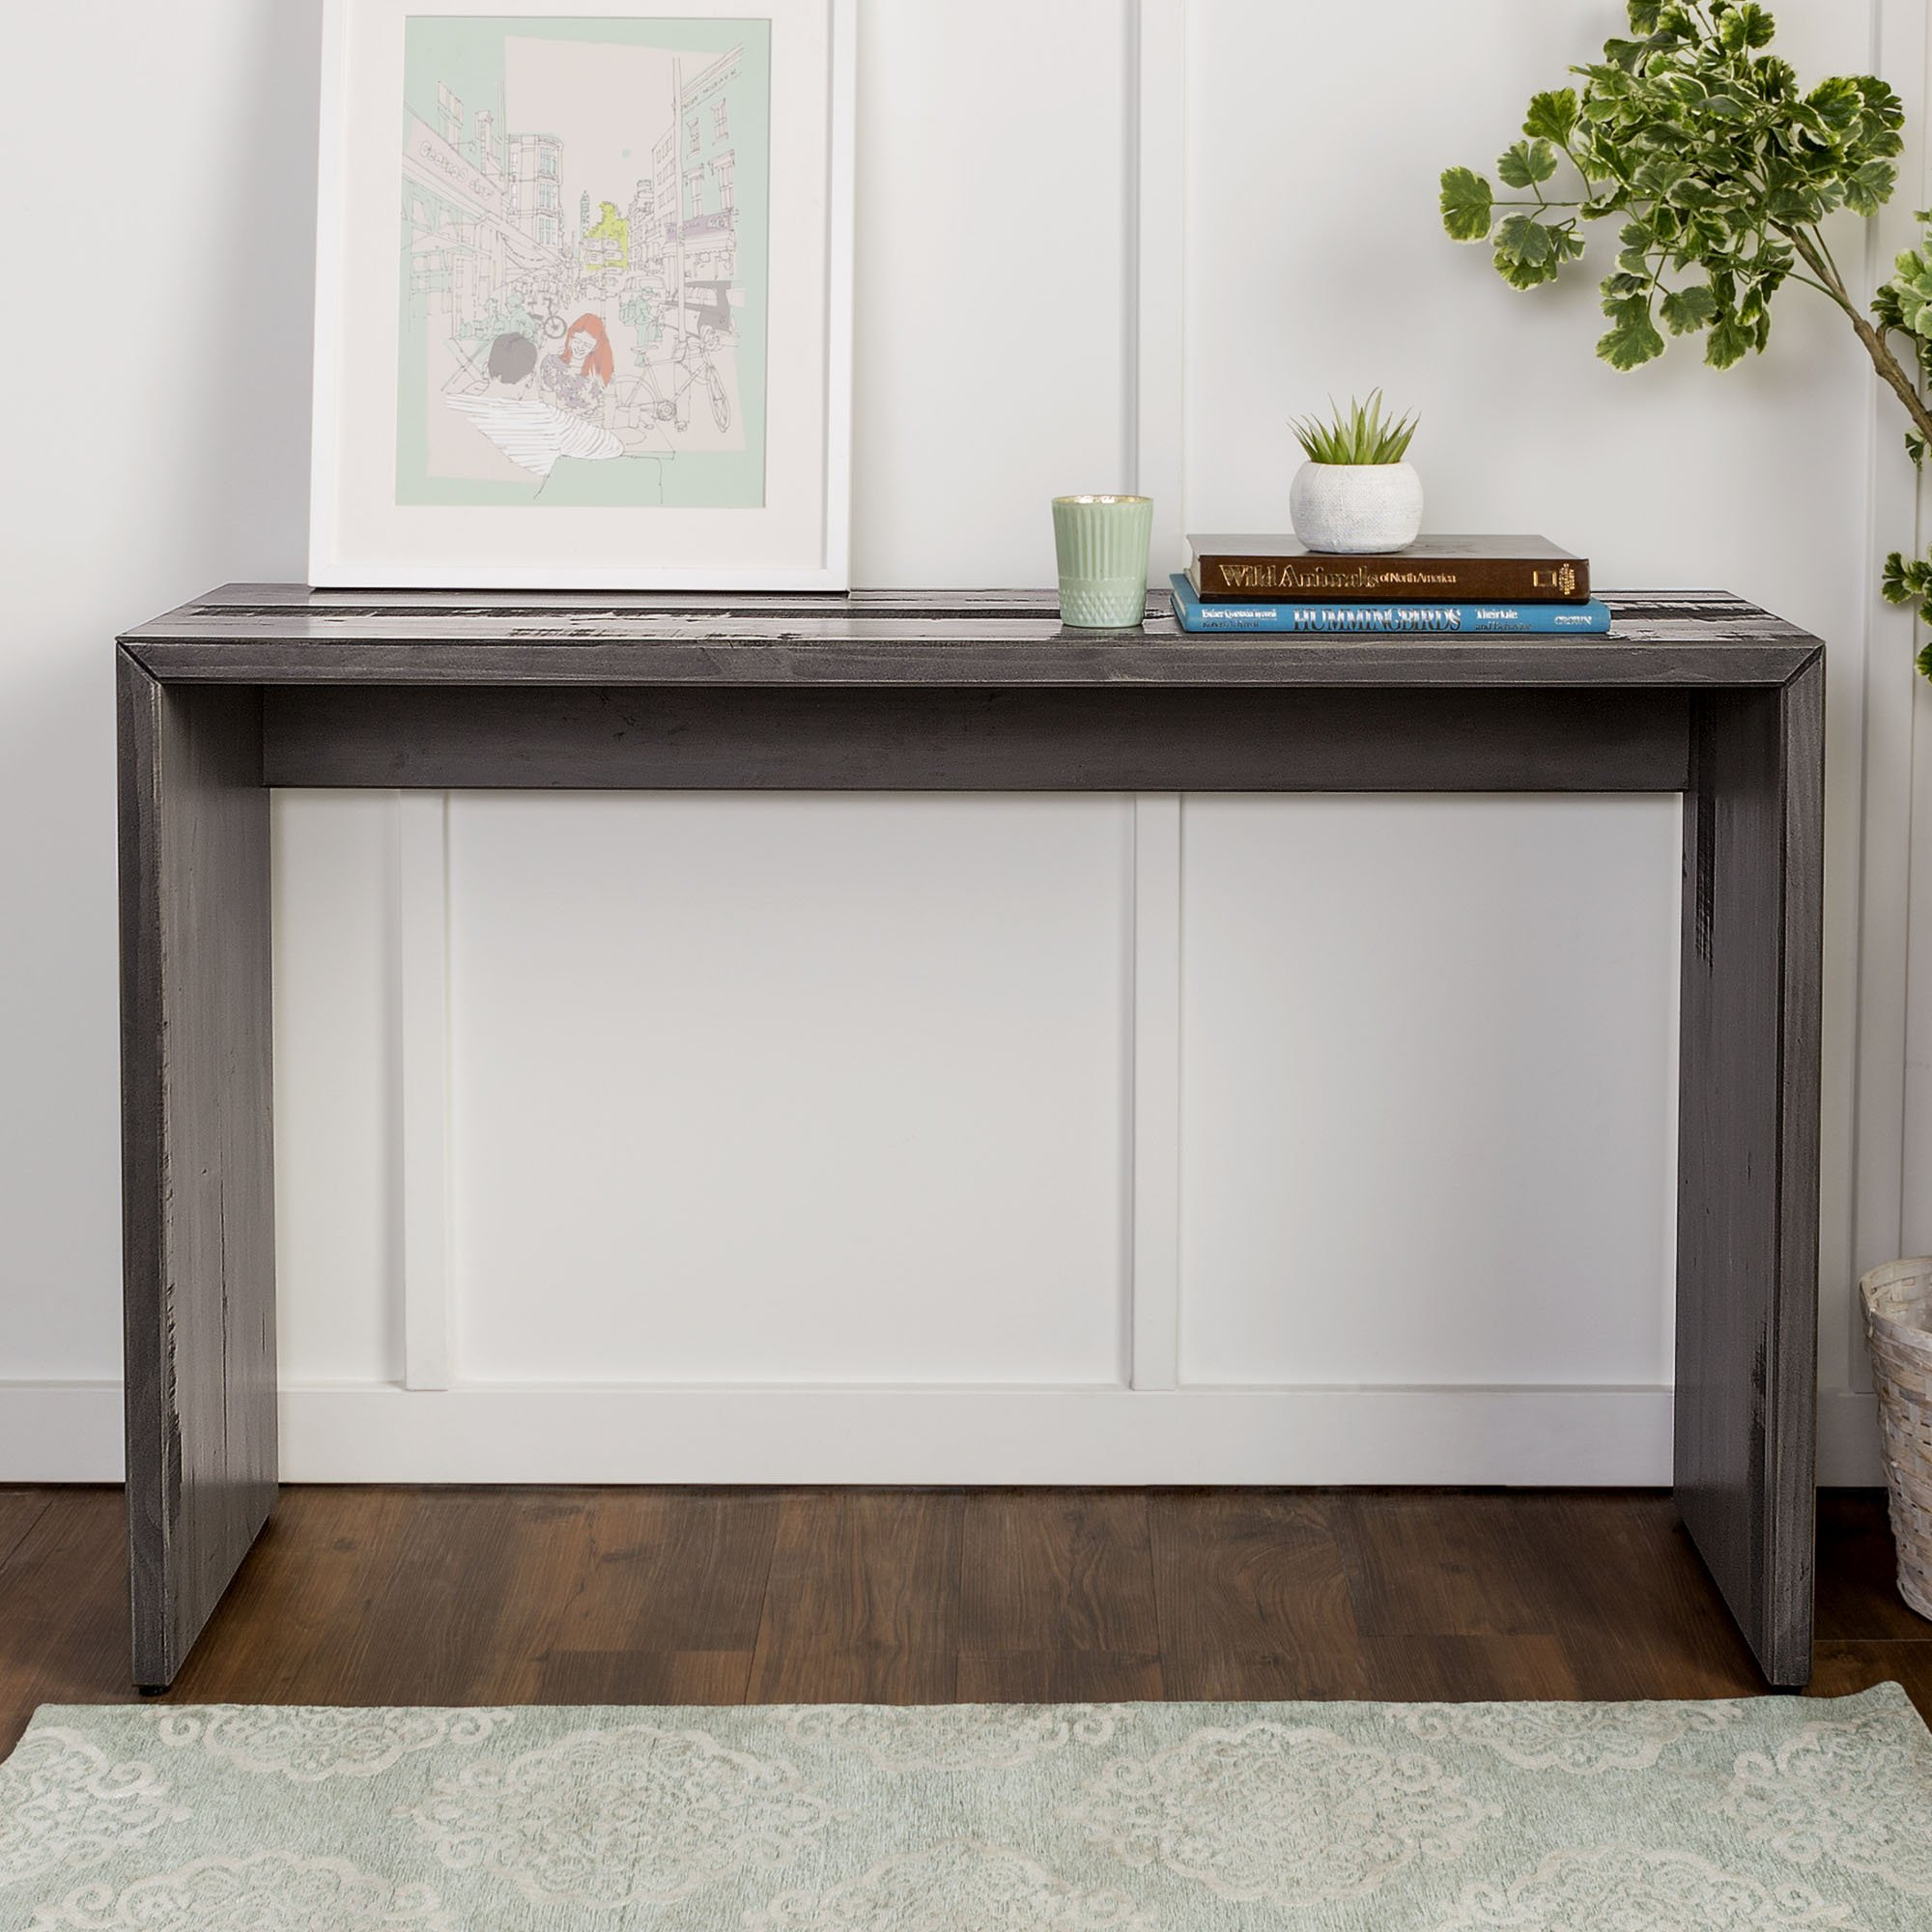 WE Furniture Reclaimed Wood Entry Table in Gray - 48'' by WE Furniture (Image #2)